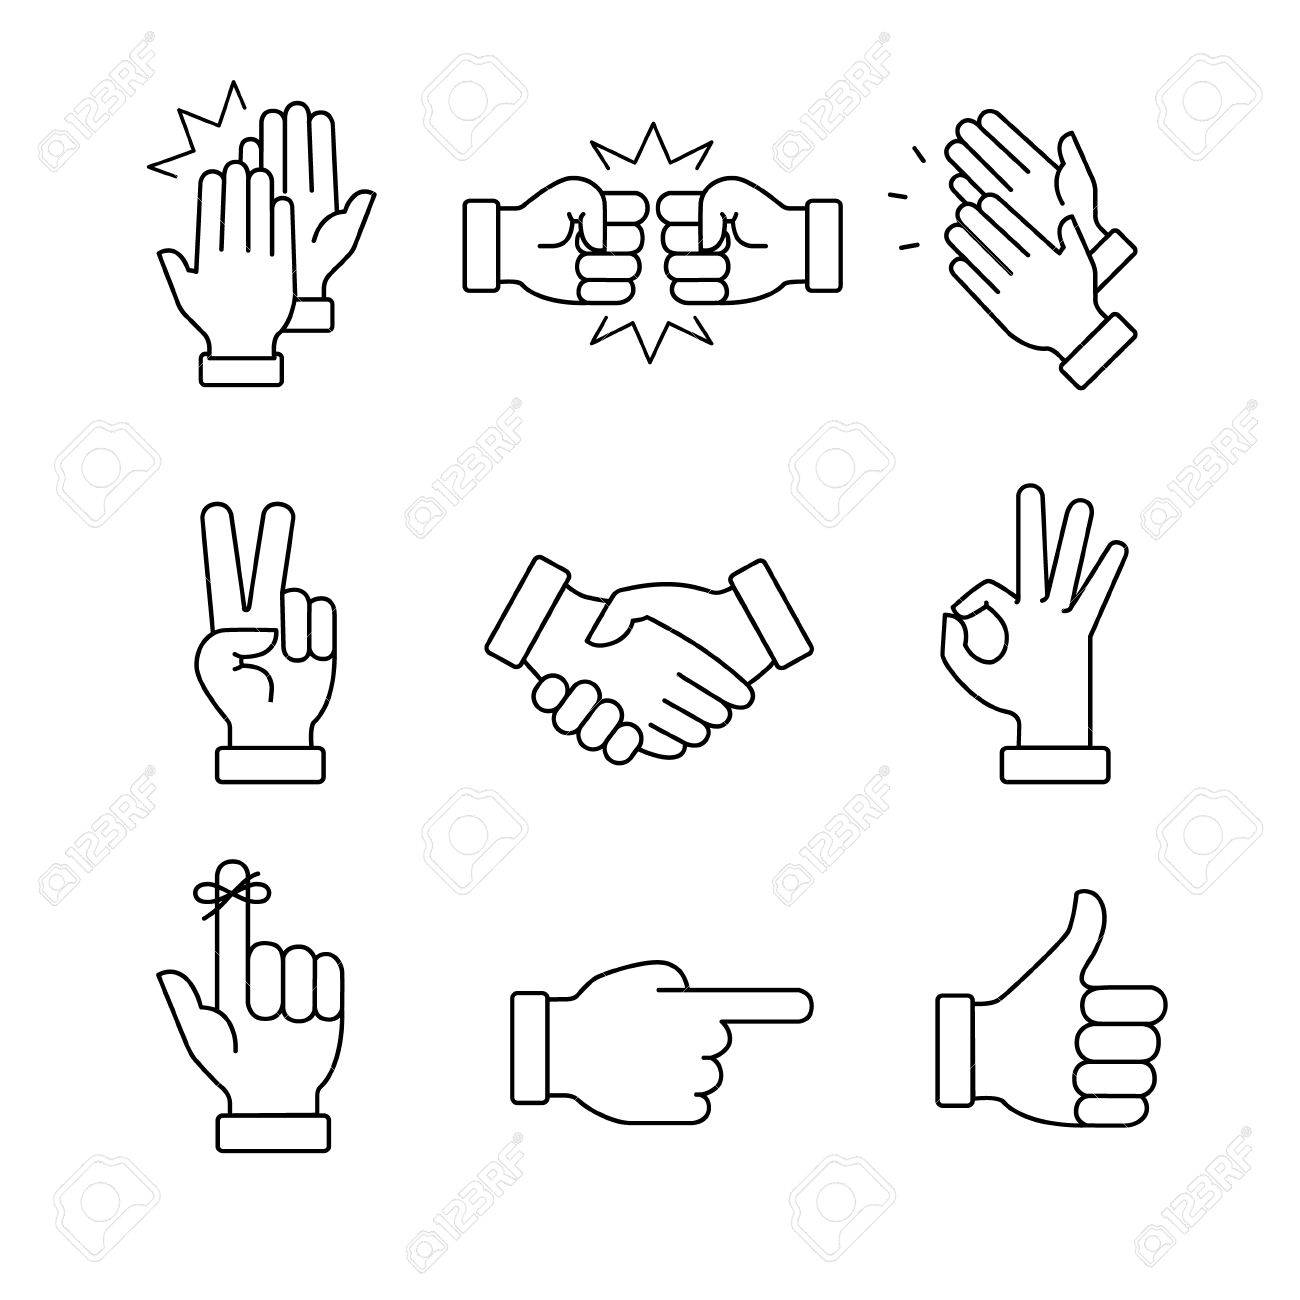 Clapping hands and other gestures. Thin line art icons set.Black vector symbols isolated on white. - 52947847